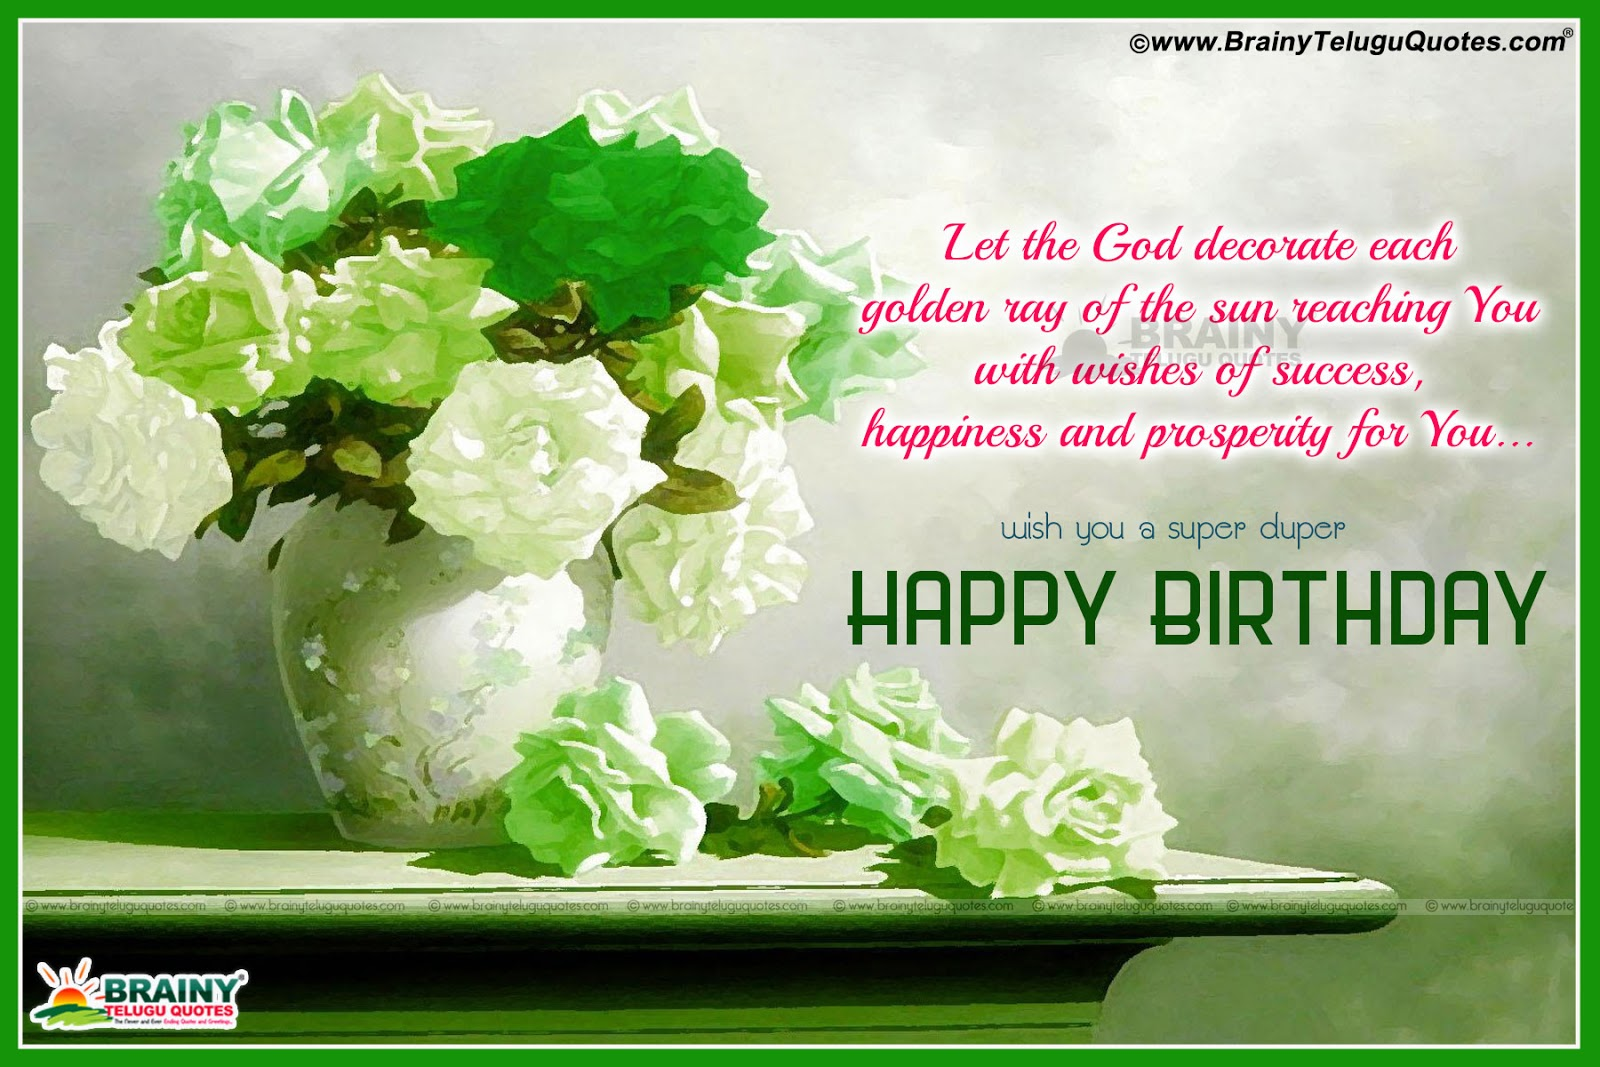 Christian Happy Birthday Friend Flowers Gardening Flower And